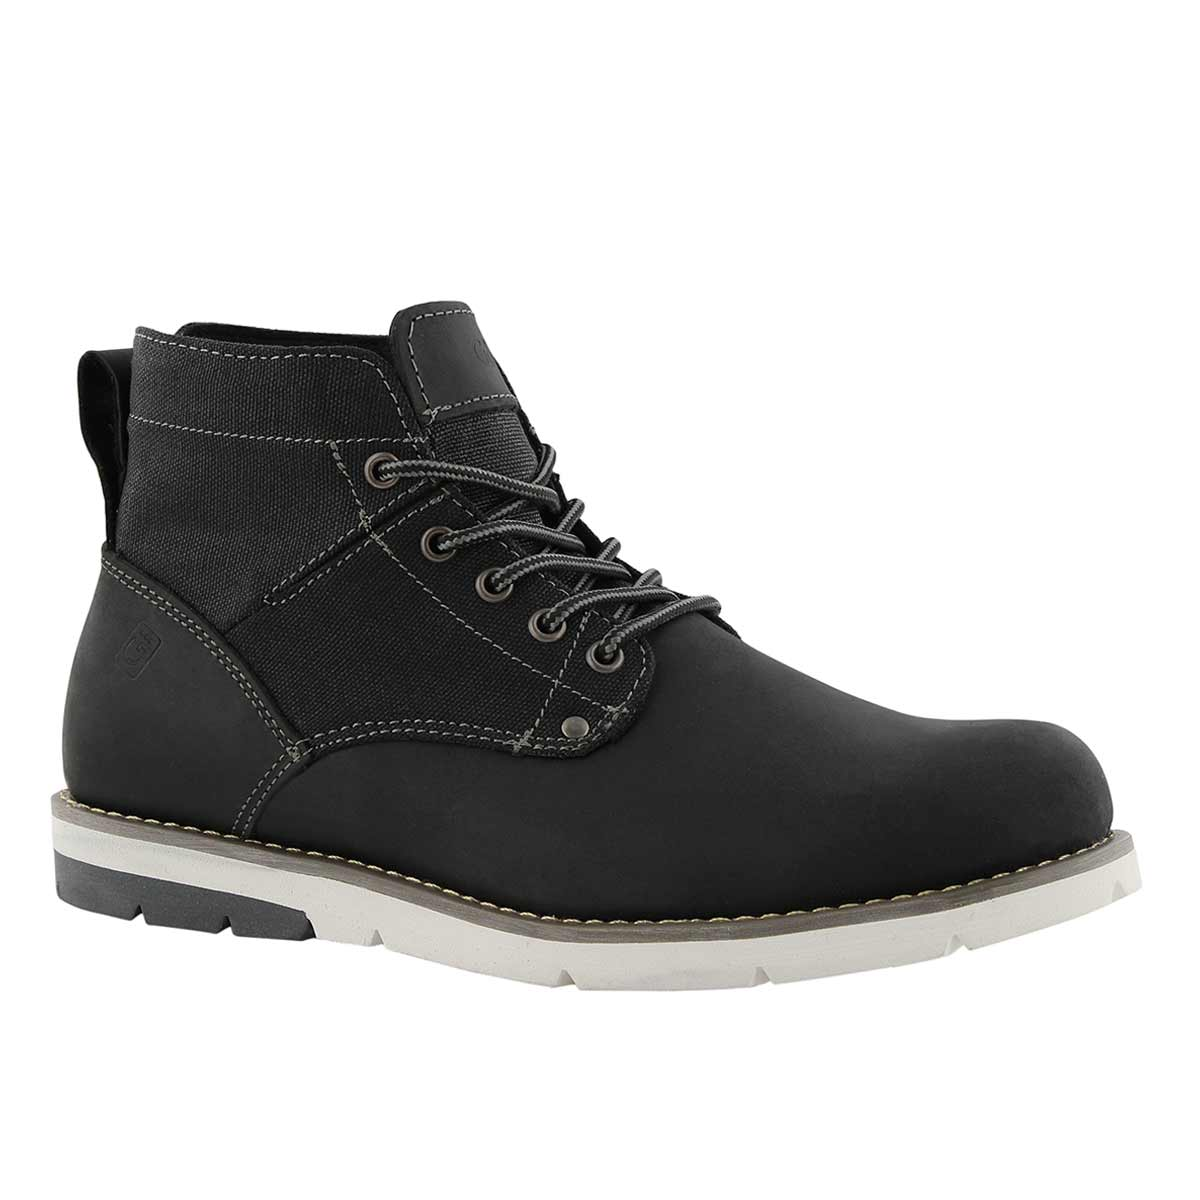 Mns Gavin black wtrpf winter boot